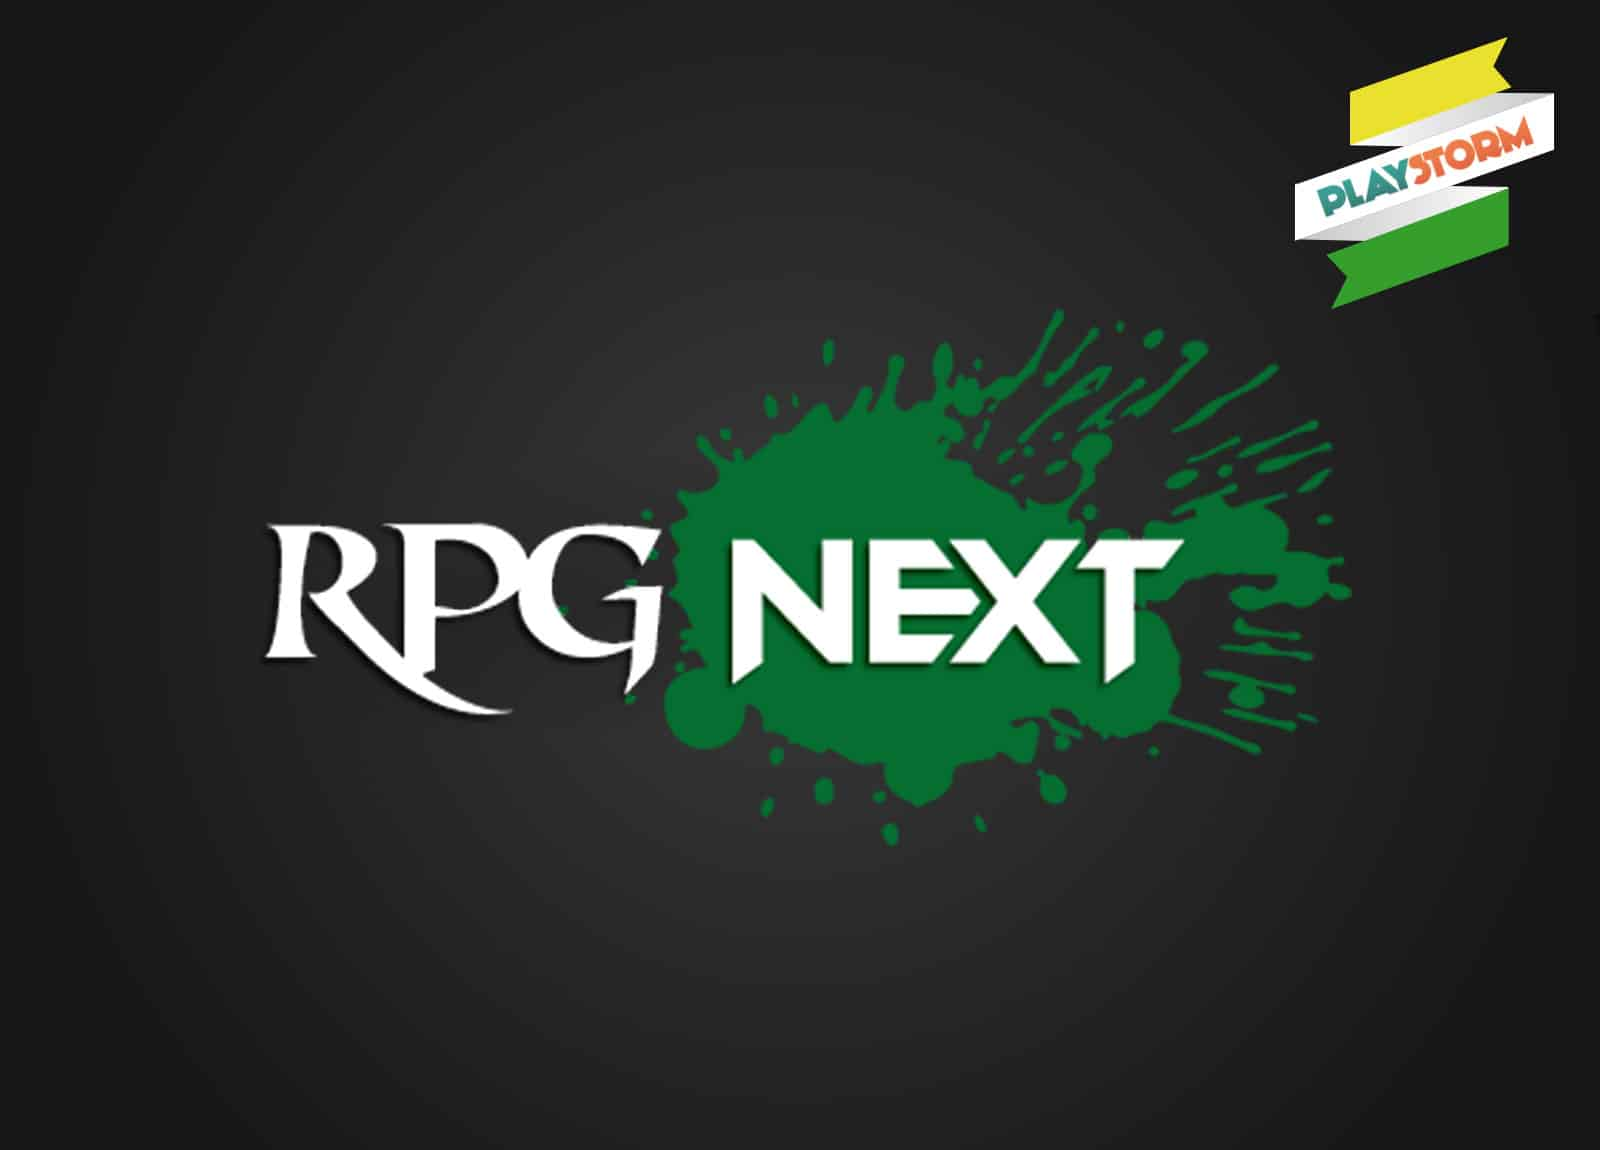 RPG Next - Tarrasque na Bota